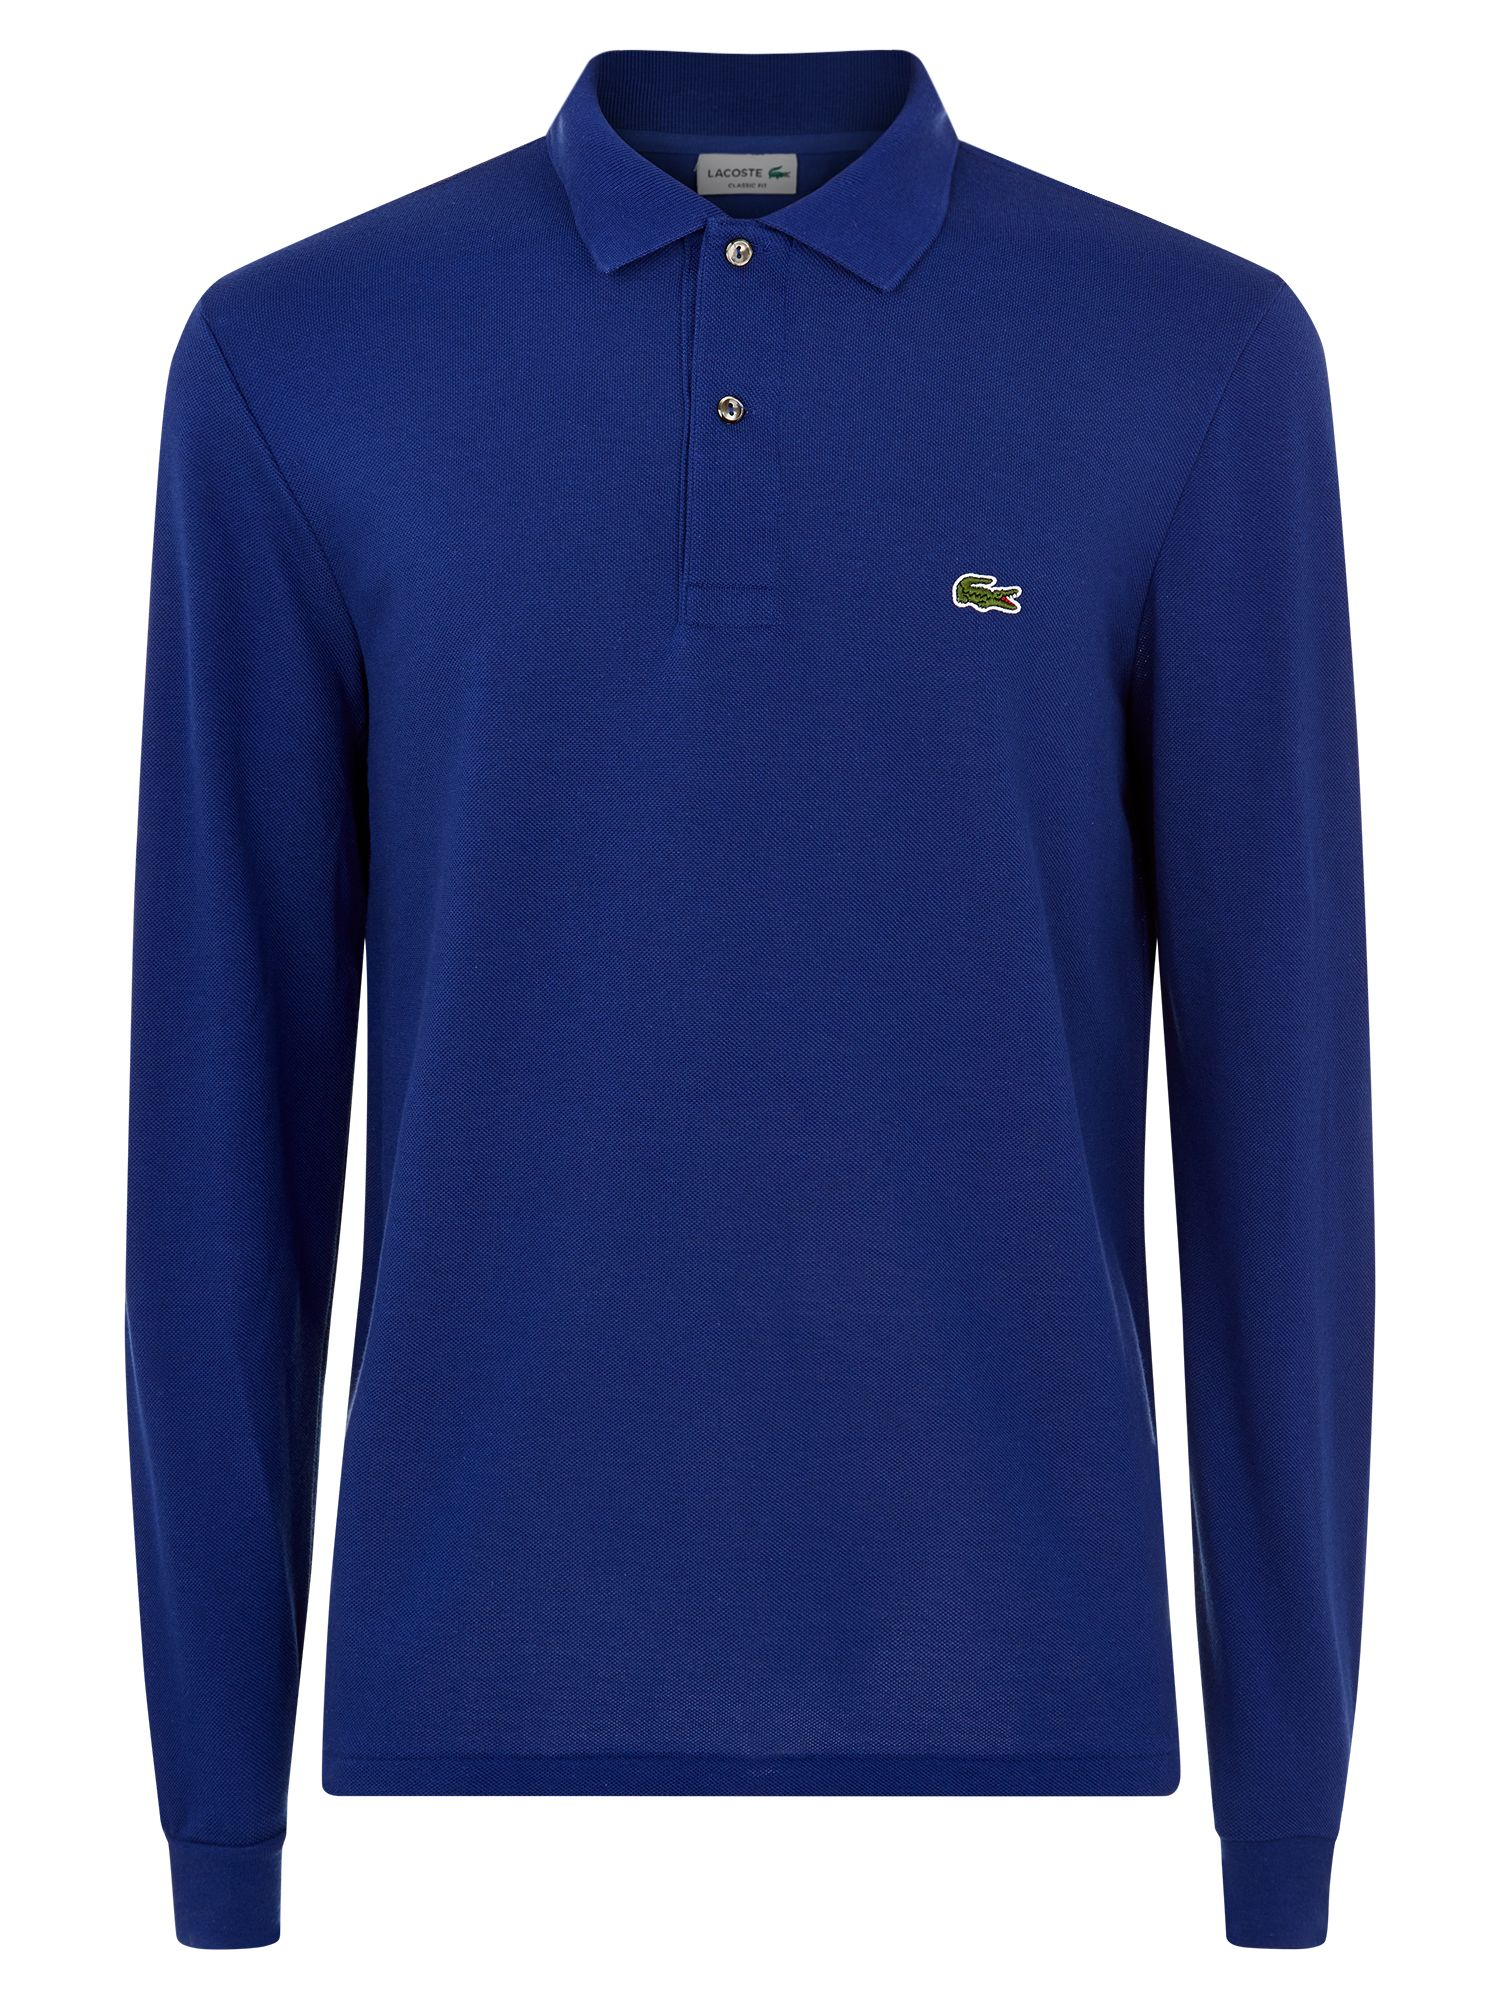 Men's Lacoste Lacoste Long Sleeve L.12.12 Polo, Ocean